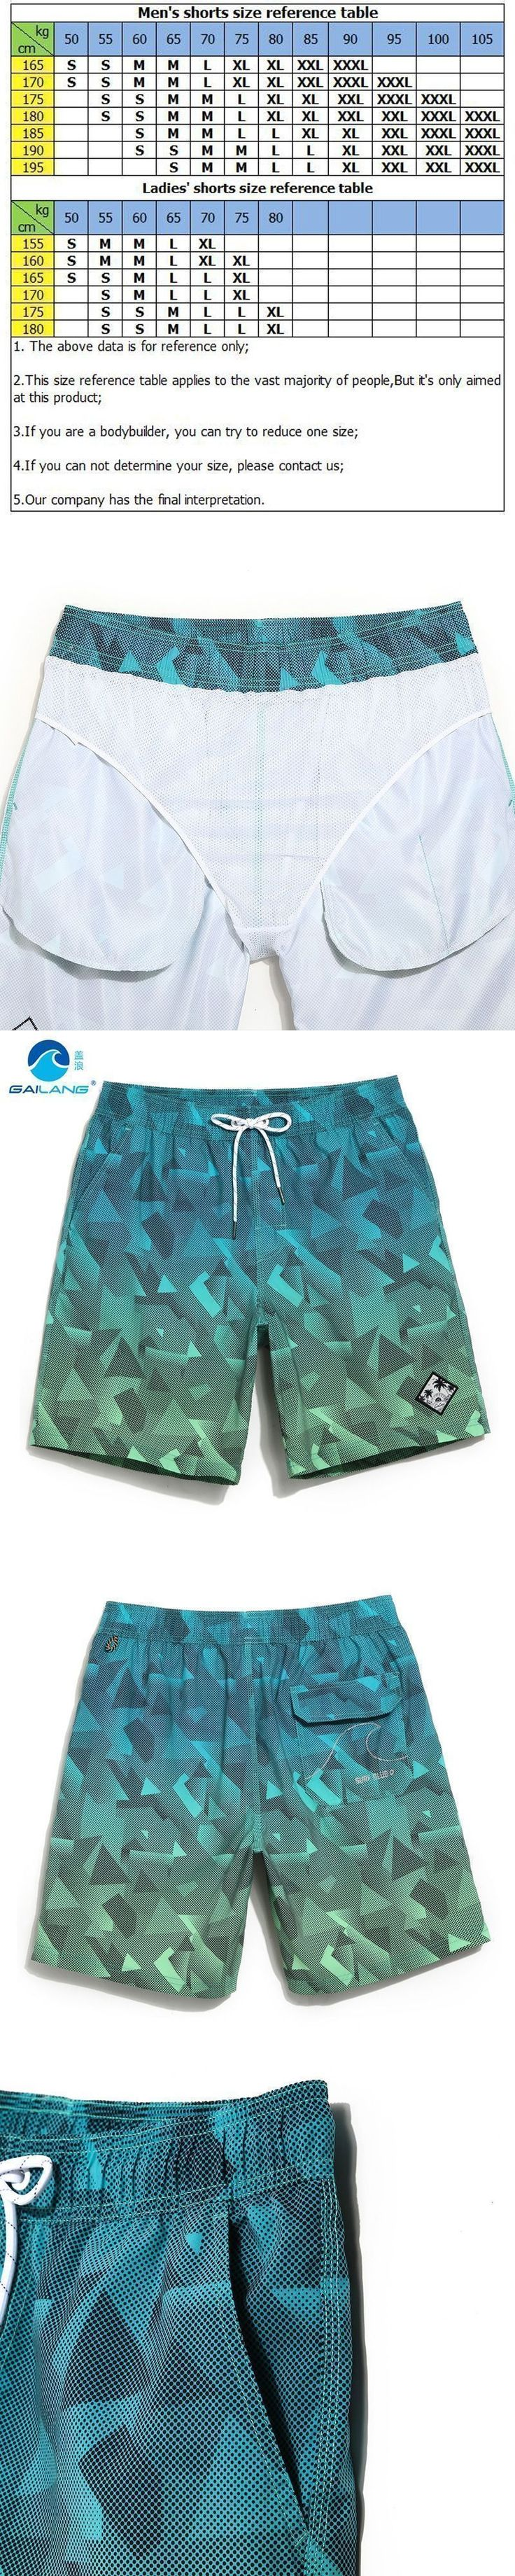 Gailang board shorts couples beach surfing liner swimwear fitness bodybuilding swimming trunks Geometric mens bathing suit men #surfingfitness #mensfitness #men'sfitness